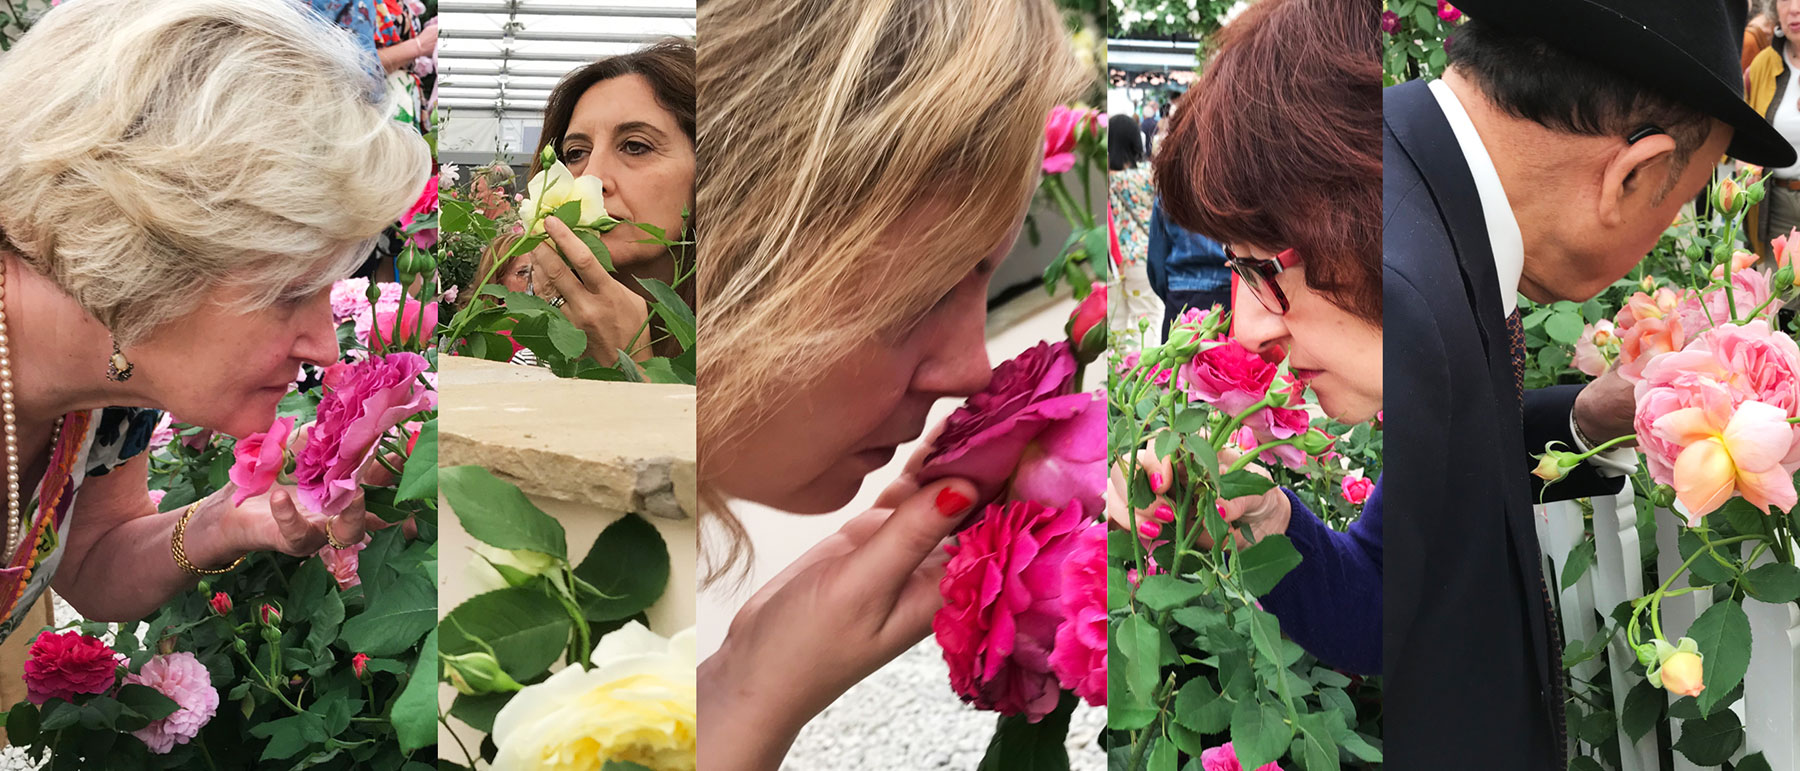 Inhalling the luxurious scent of roses at the Chelsea Flower Show. ©ToddHaimanLandscapeDesign2019